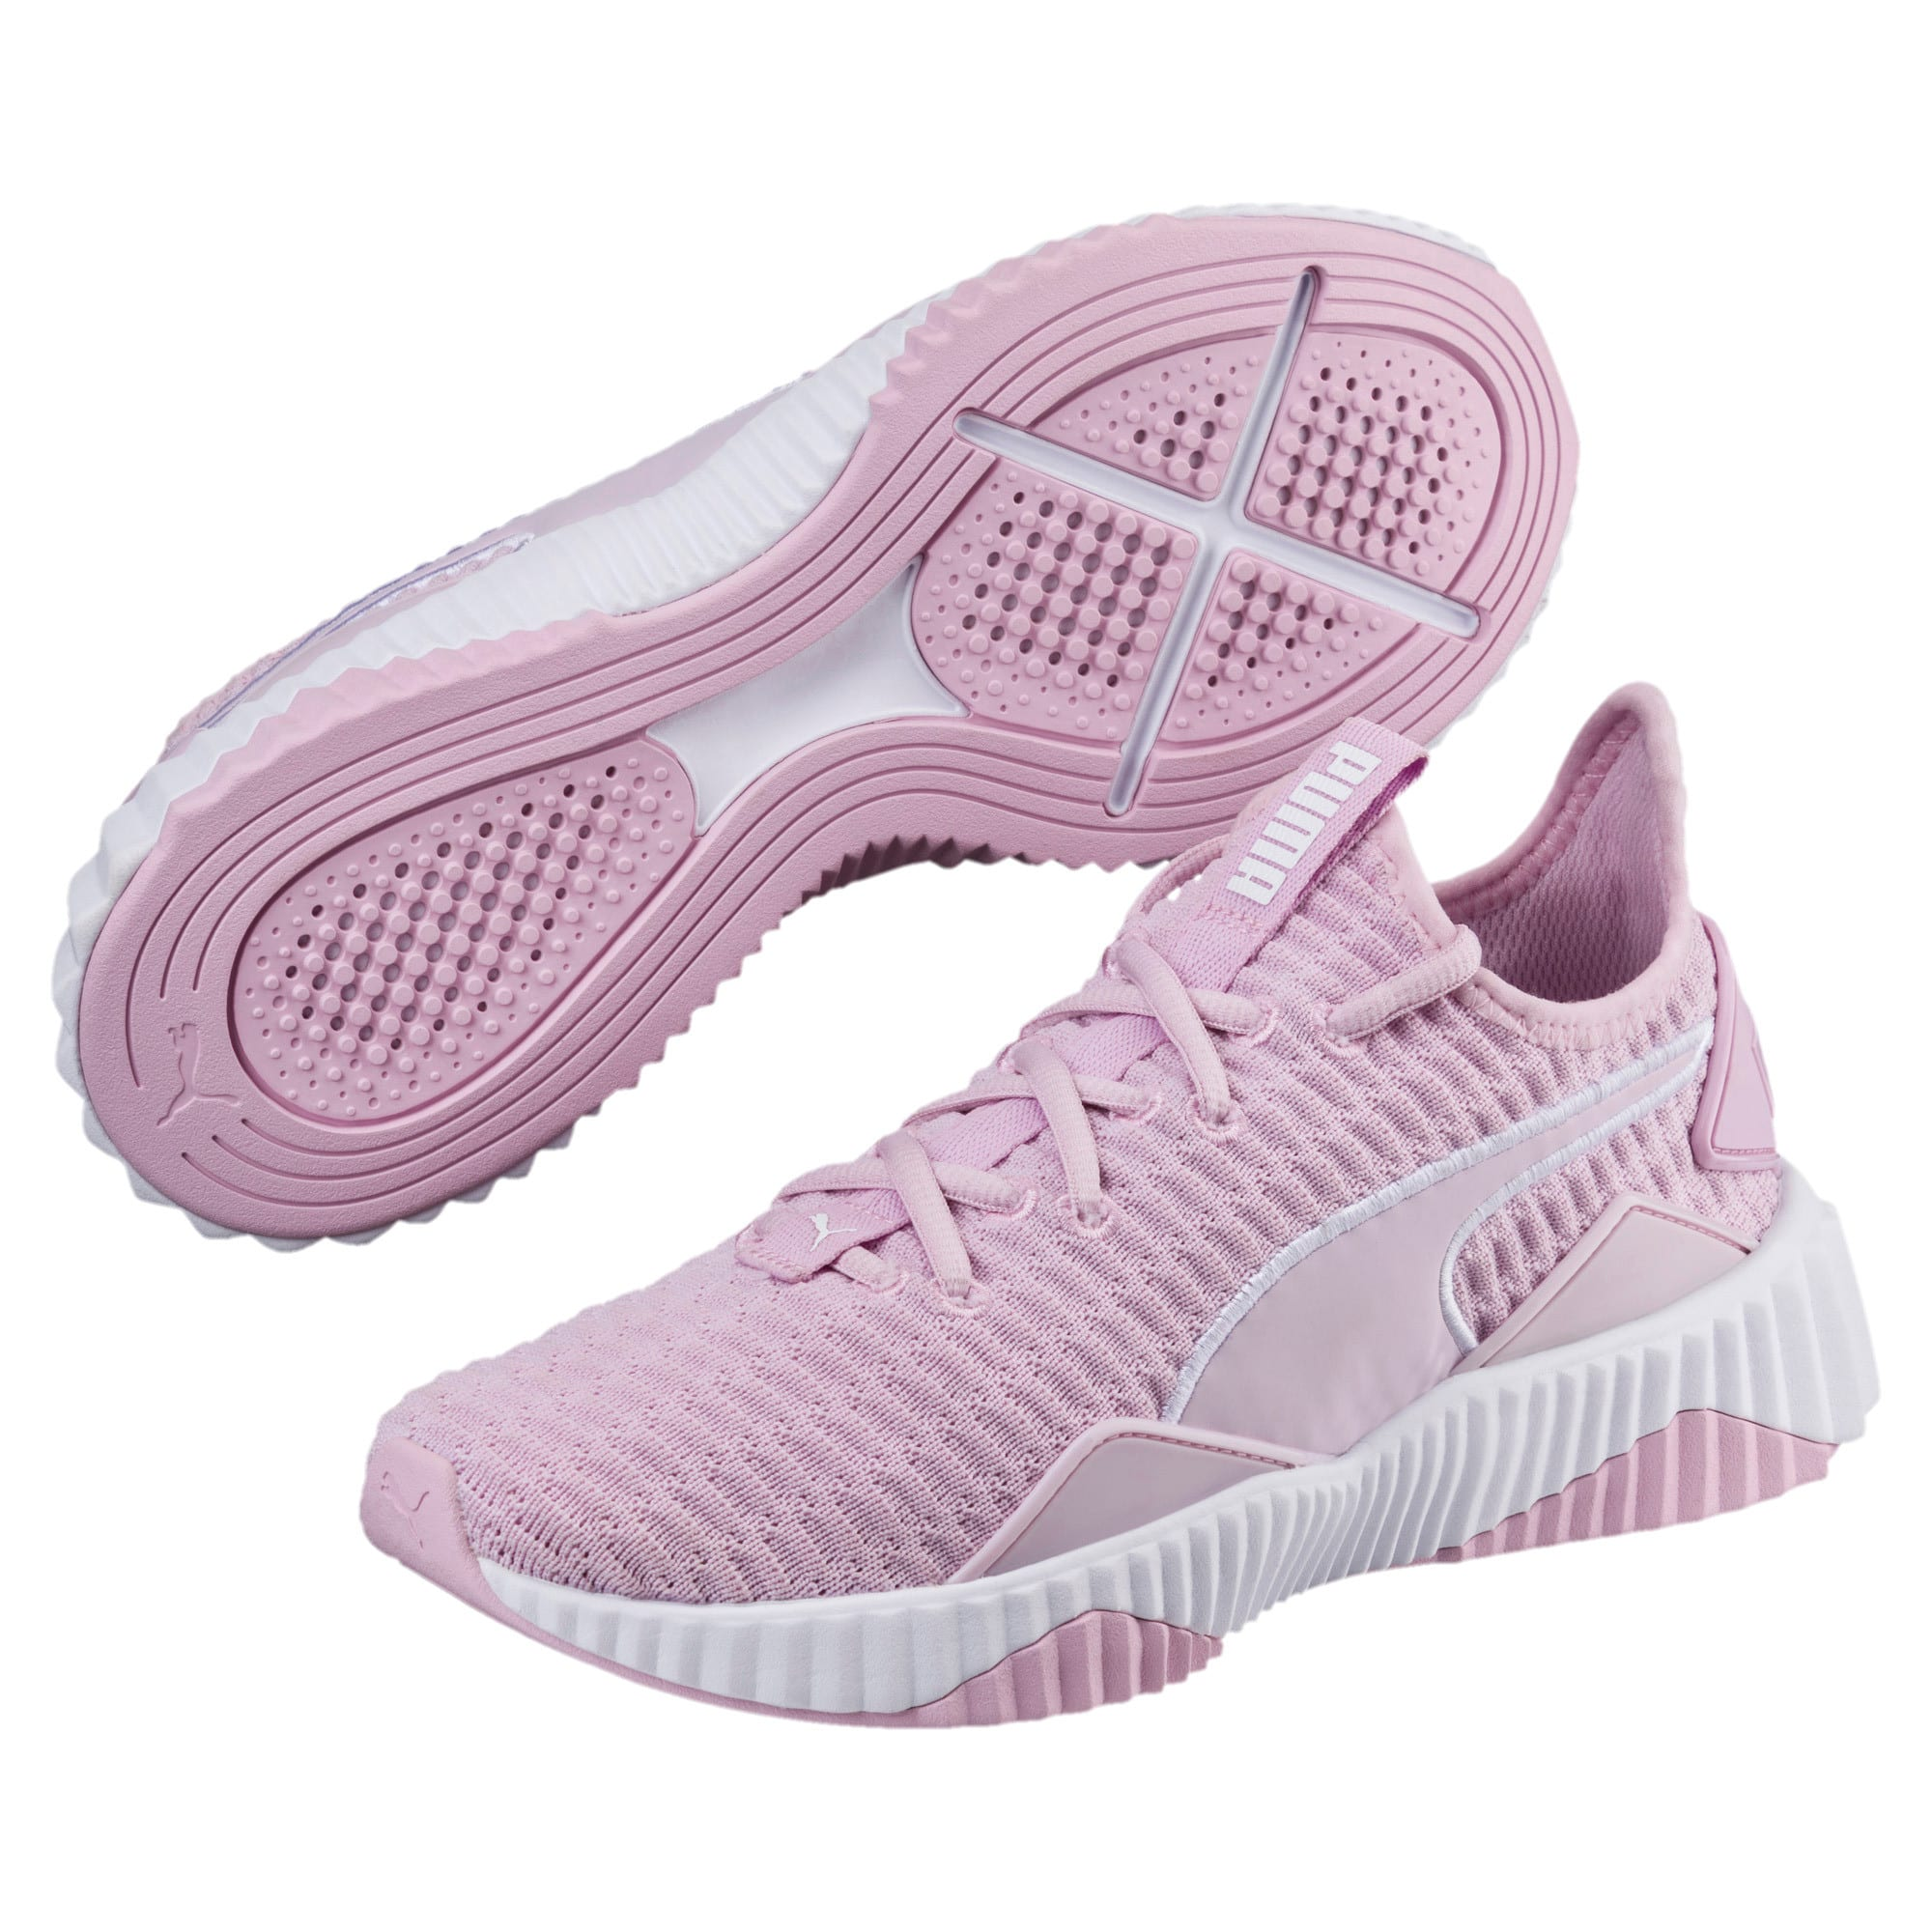 Thumbnail 2 of Defy Women's Training Shoes, Winsome Orchid-Puma White, medium